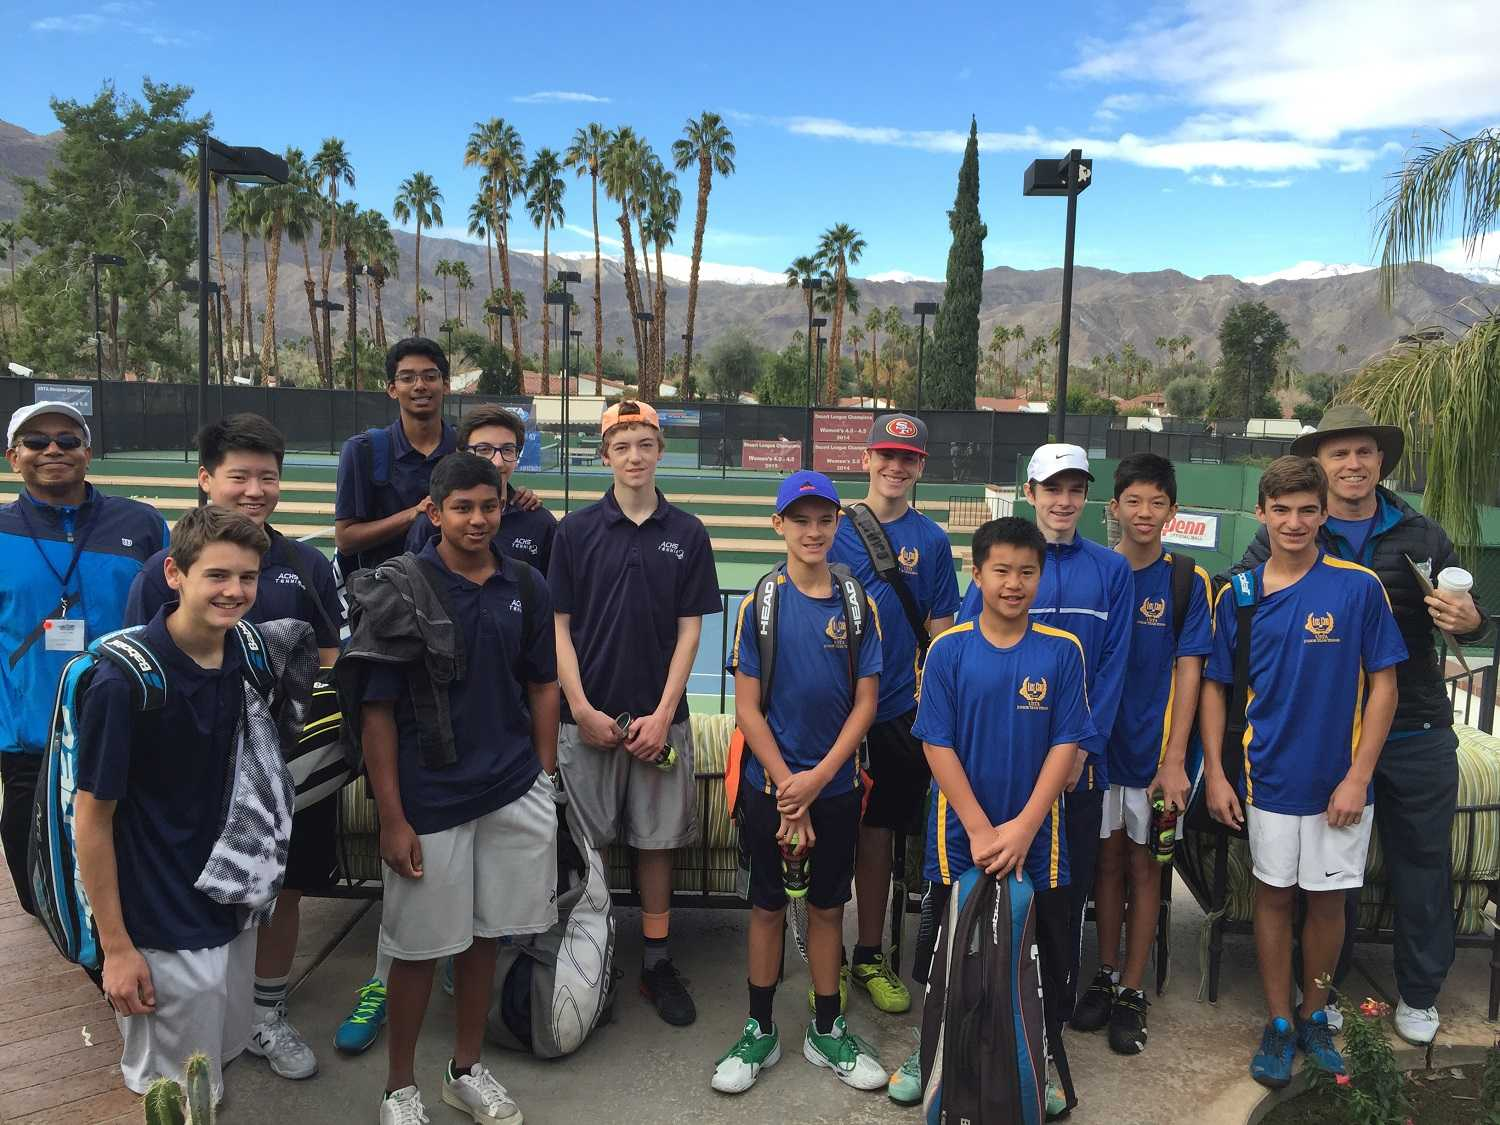 The Cam High (left) and Los Cab (right) boys tennis teams pose for a picture before their tournament.